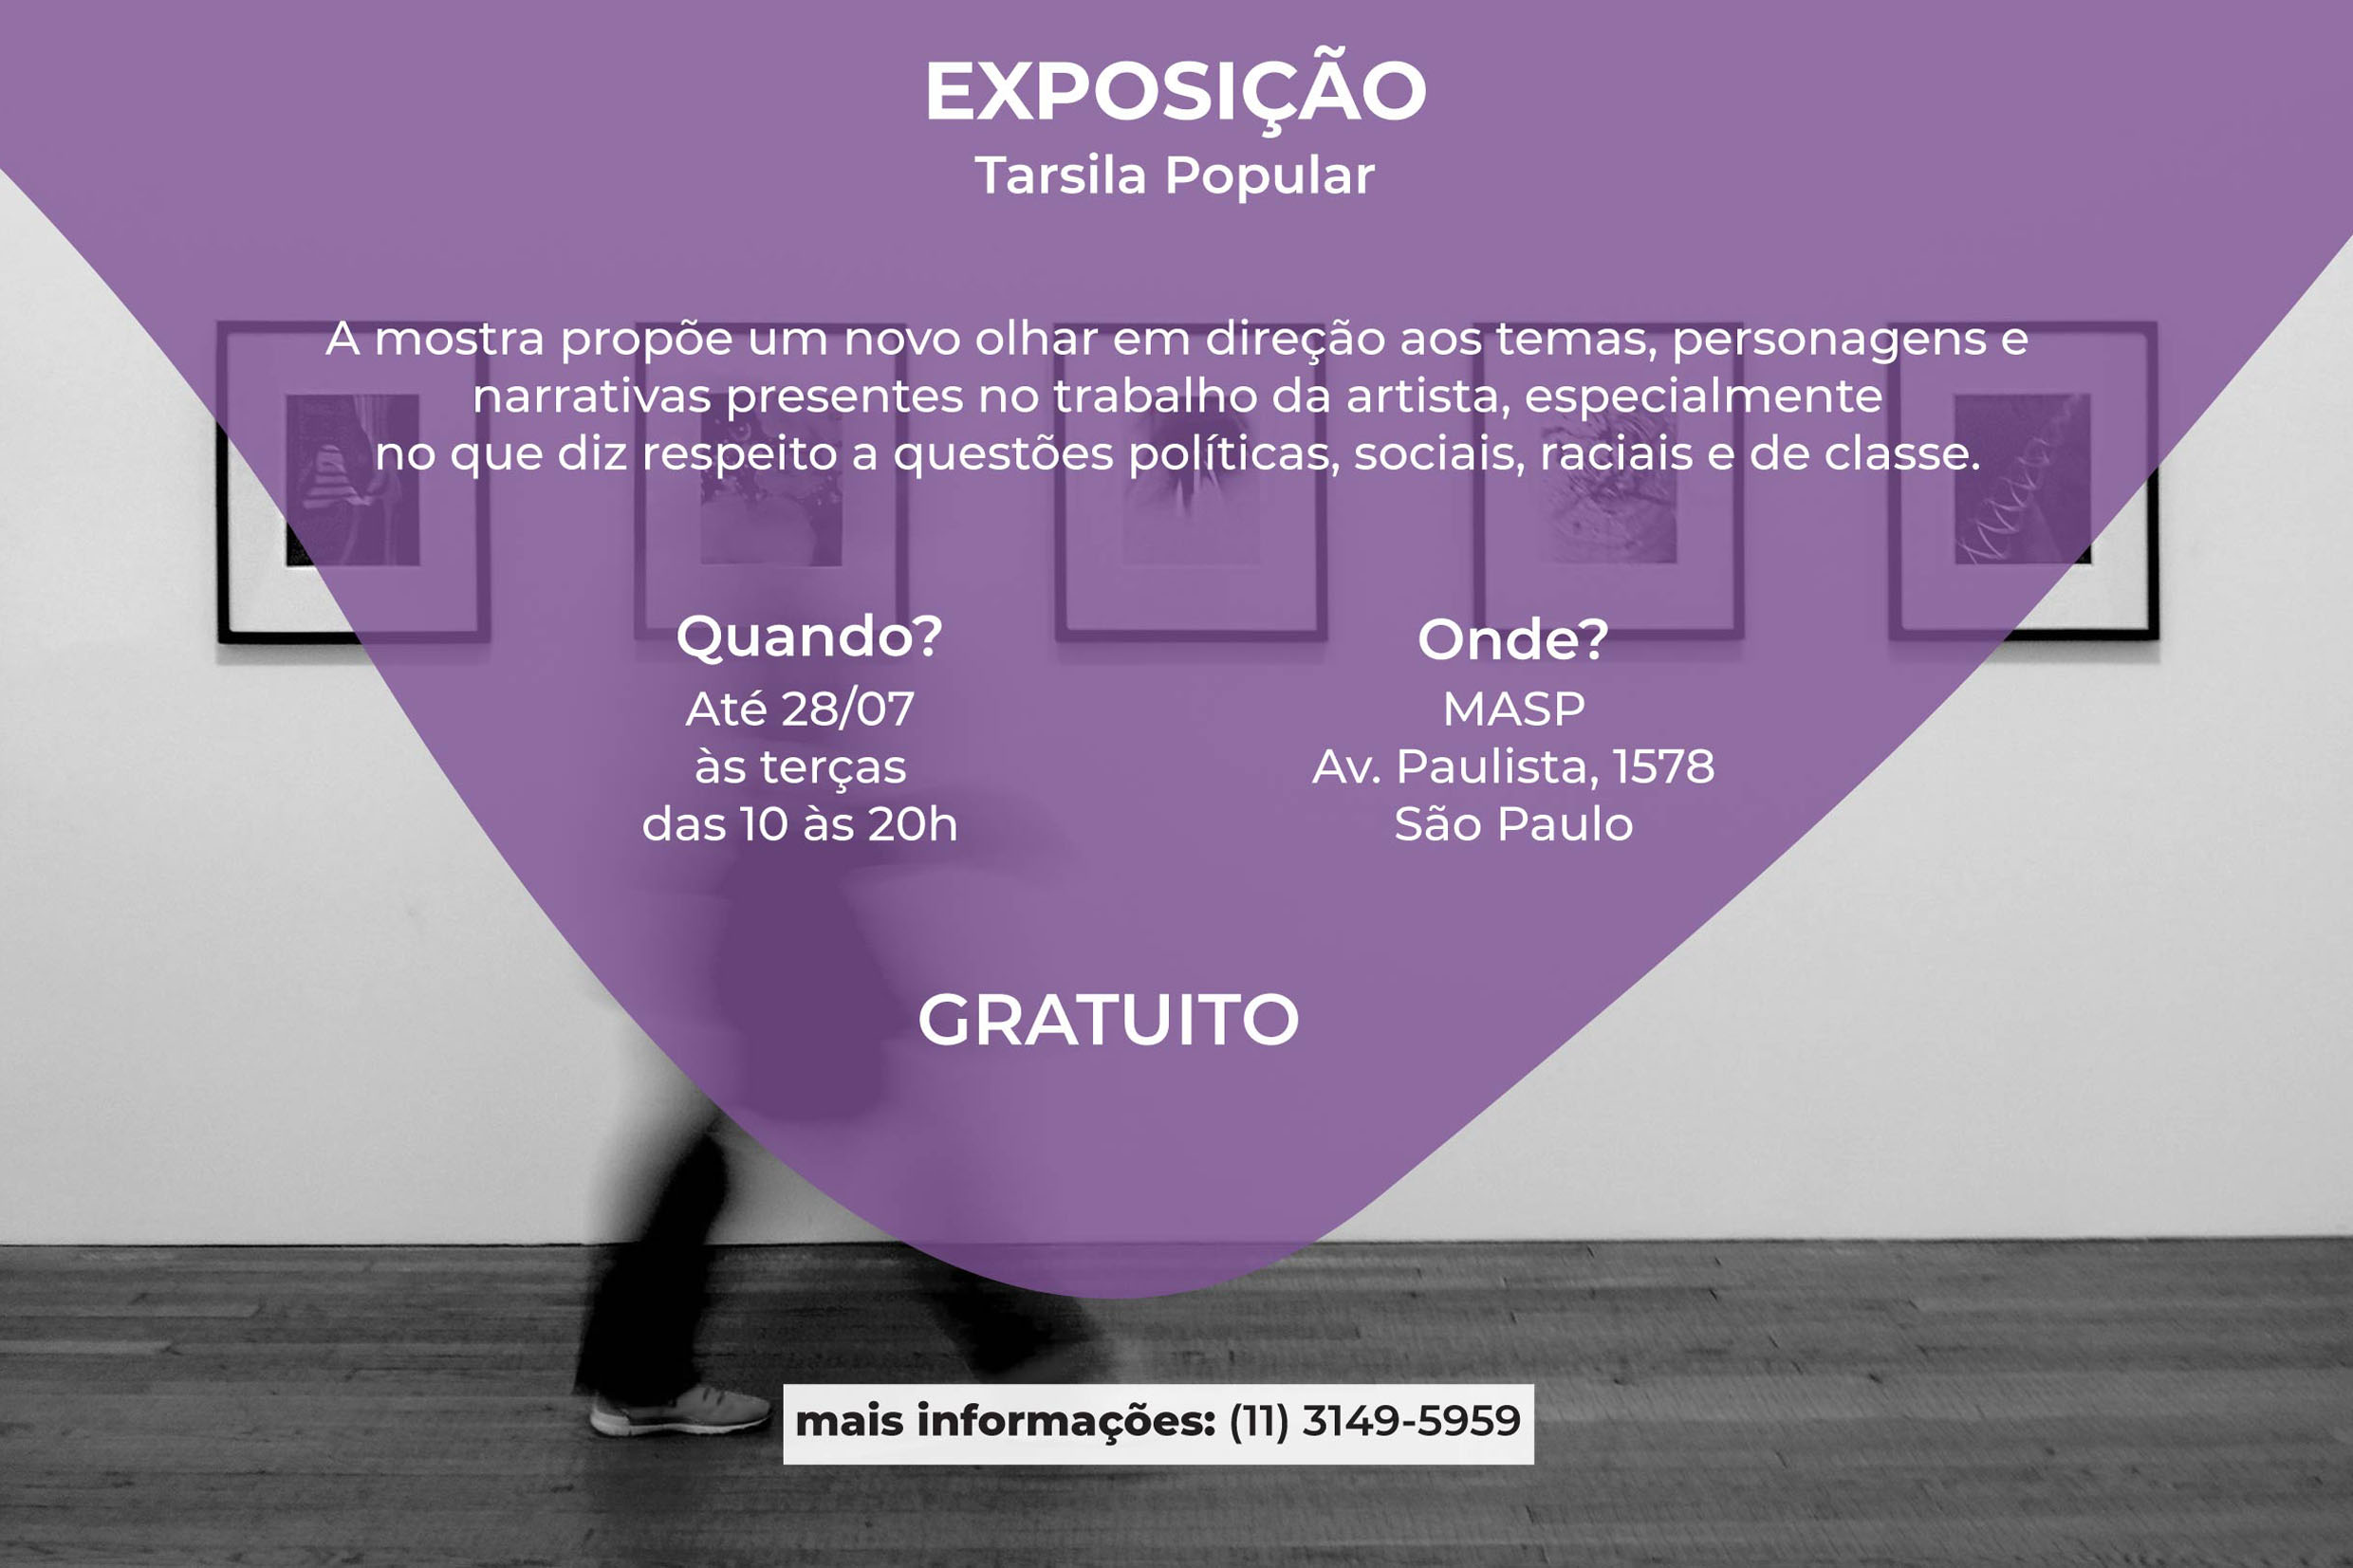 Agência Alesp<a style='float:right' href='https://www3.al.sp.gov.br/repositorio/noticia/N-07-2019/fg236868.jpg' target=_blank><img src='/_img/material-file-download-white.png' width='14px' alt='Clique para baixar a imagem'></a>